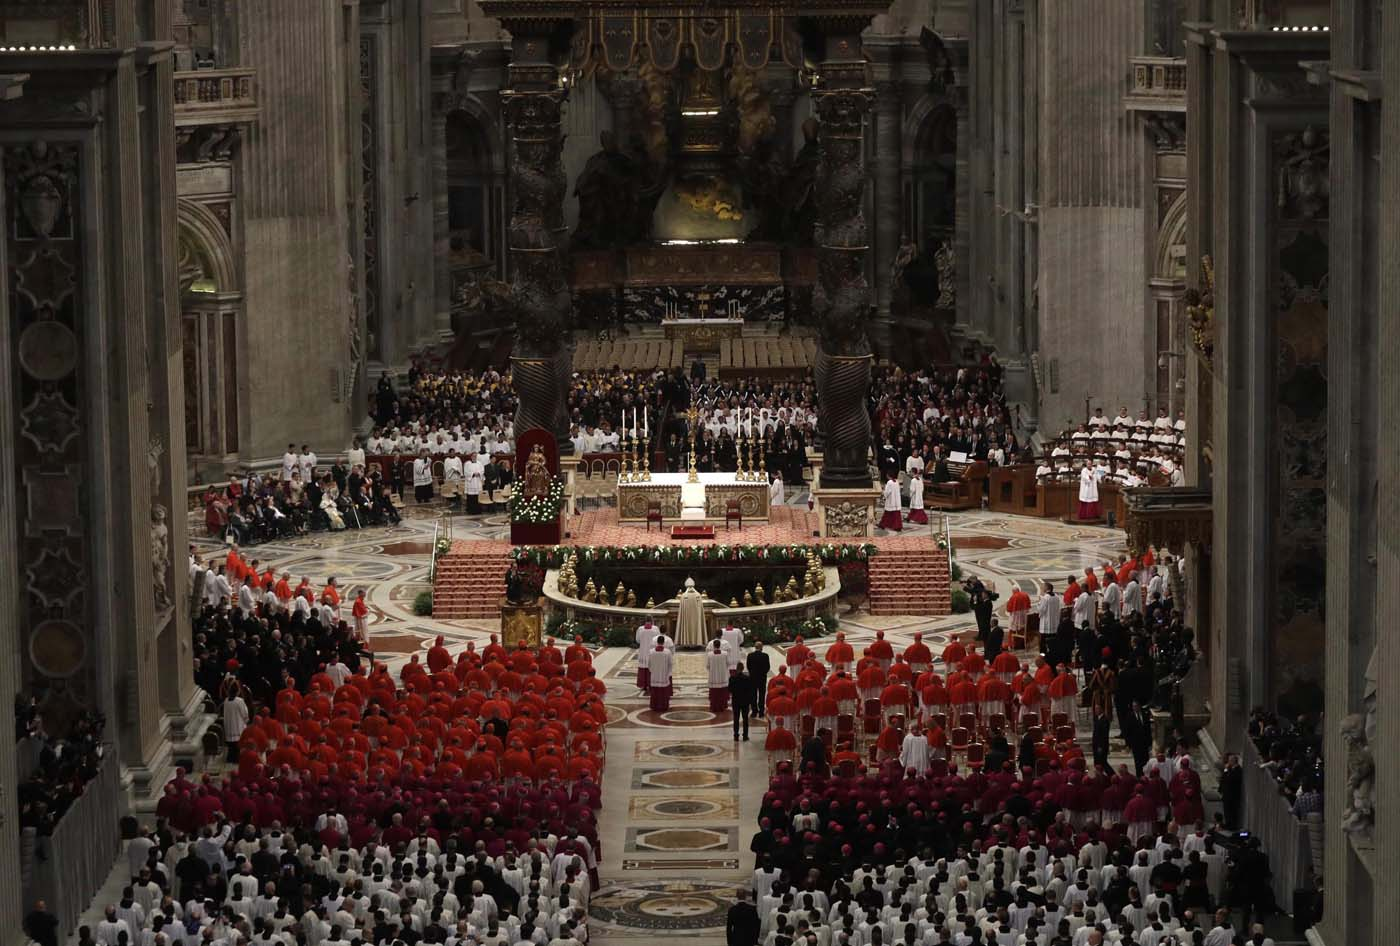 ALT109. Vatican City (Vatican City State (holy See)), 19/11/2016.- A general view of St. Peter's Basilica before the start of a Consistory ceremony in Vatican, 19 November 2016. Pope Francis has named 17 new cardinals, 13 of them under age 80 and thus eligible to vote in a conclave to elect his successor. (Papa) EFE/EPA/GREGORIO BORGIA/POOL